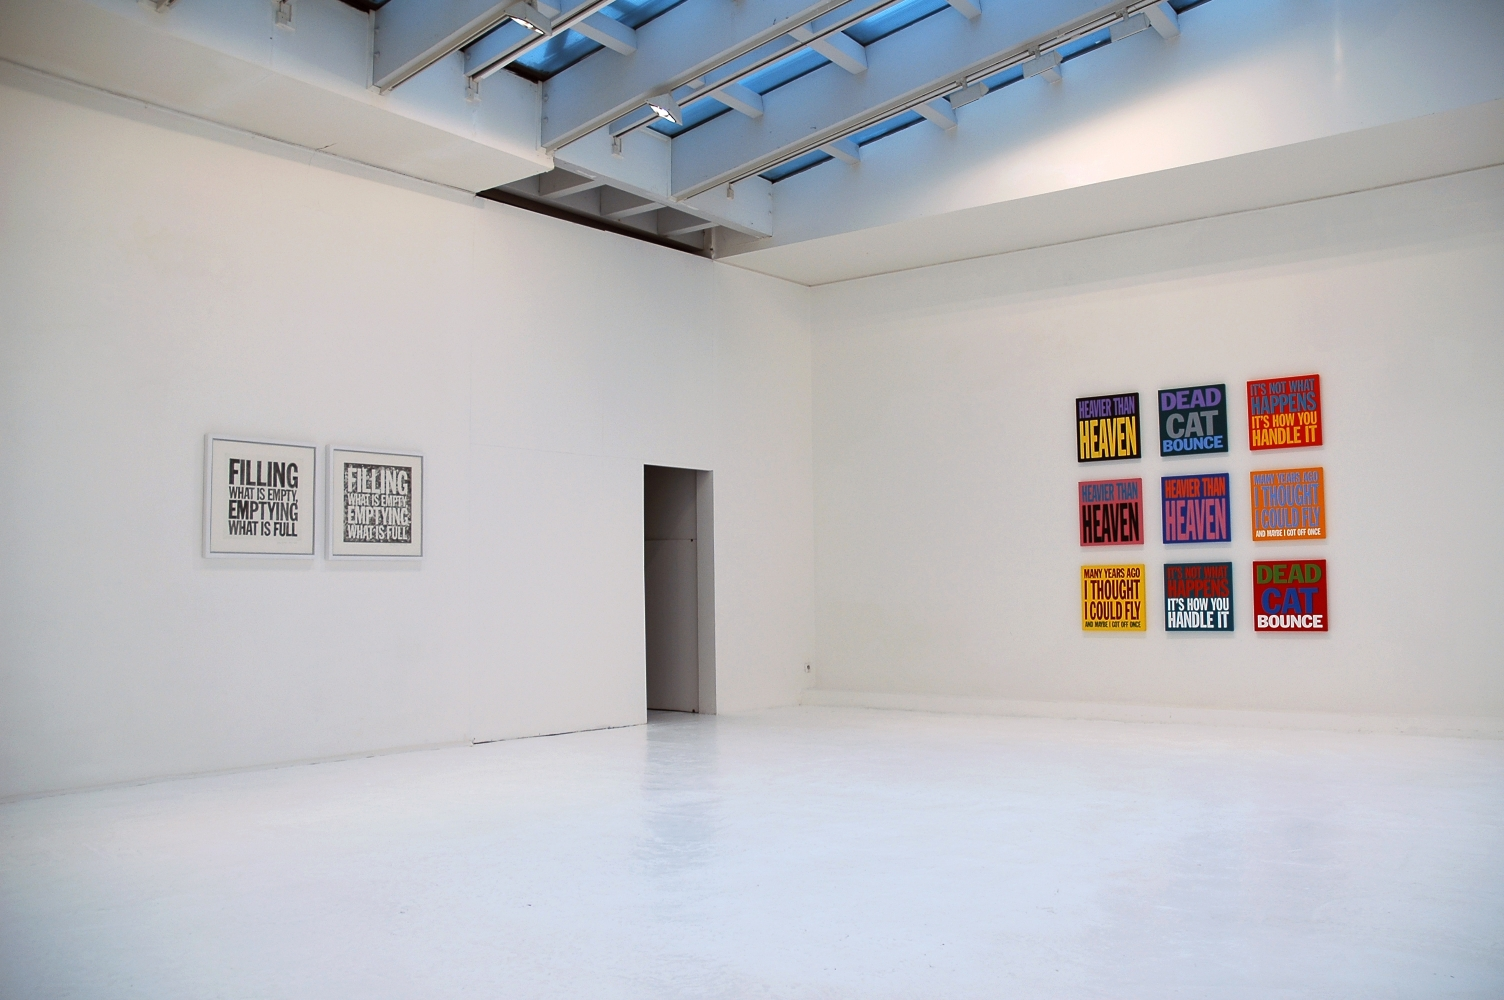 Installation view of Millions Of Stars Come Into My Heart, Welcome Home at Galerie du Jour agnès b., 2005